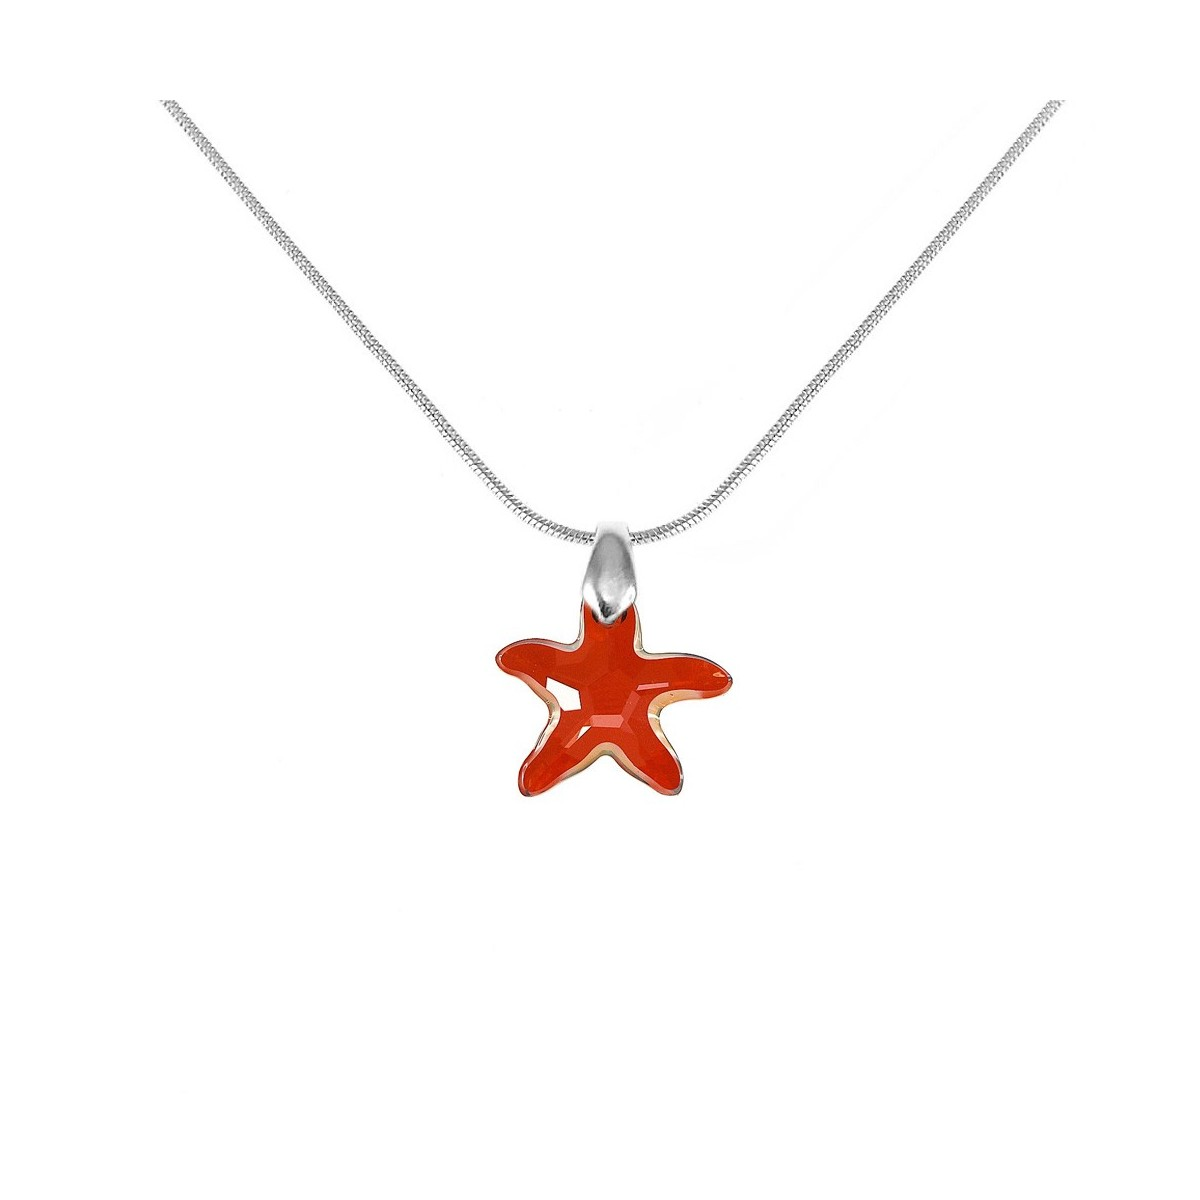 Collier argenté étoile de mer rouge So Charm made with Crystal from Swarovski